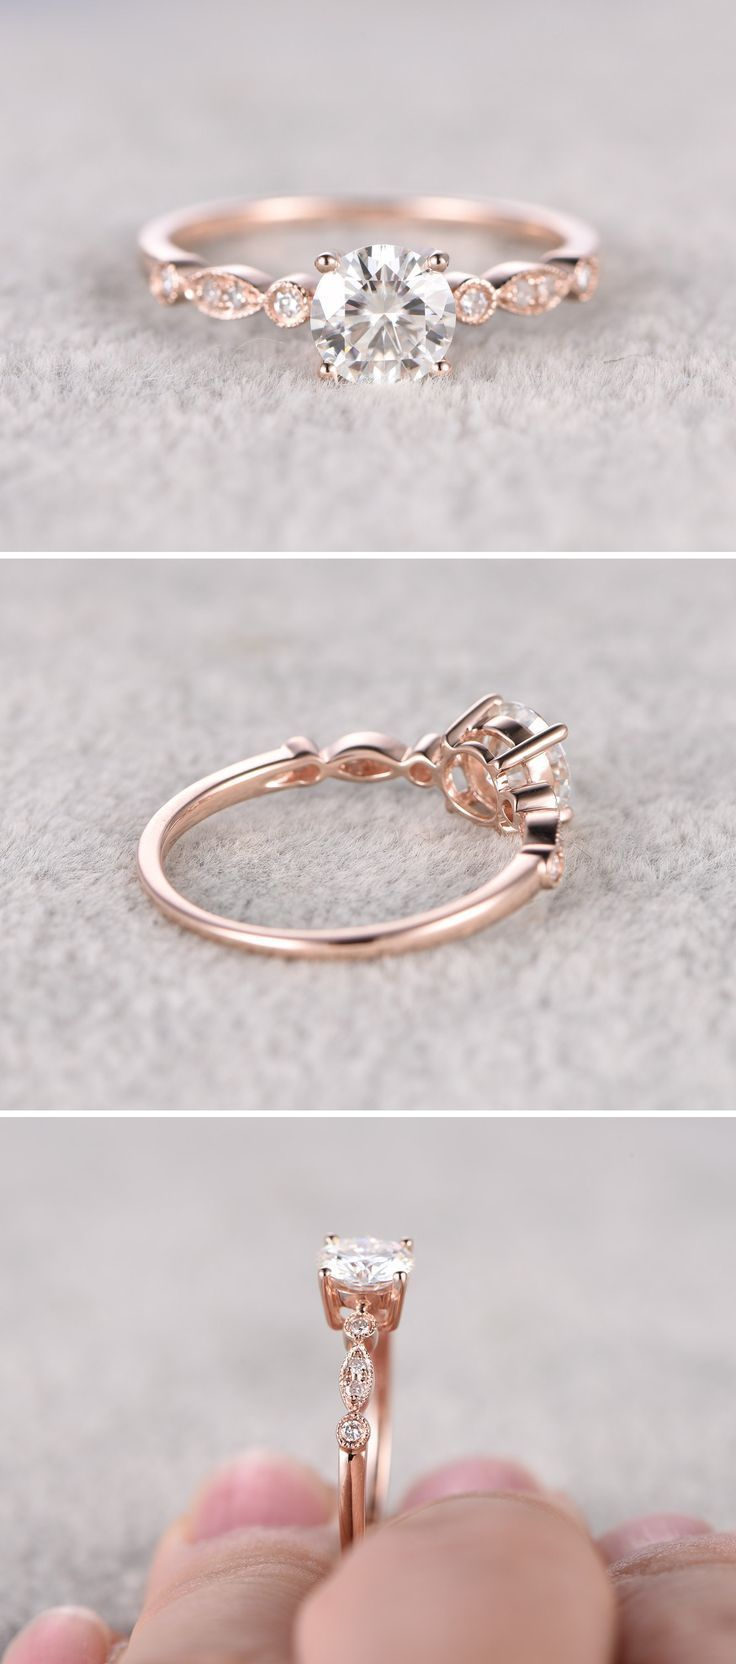 Top 25+ Best Luxury Engagement Rings Ideas On Pinterest  Square Wedding  Rings, Bohemian Engagement Rings And Square Engagement Rings